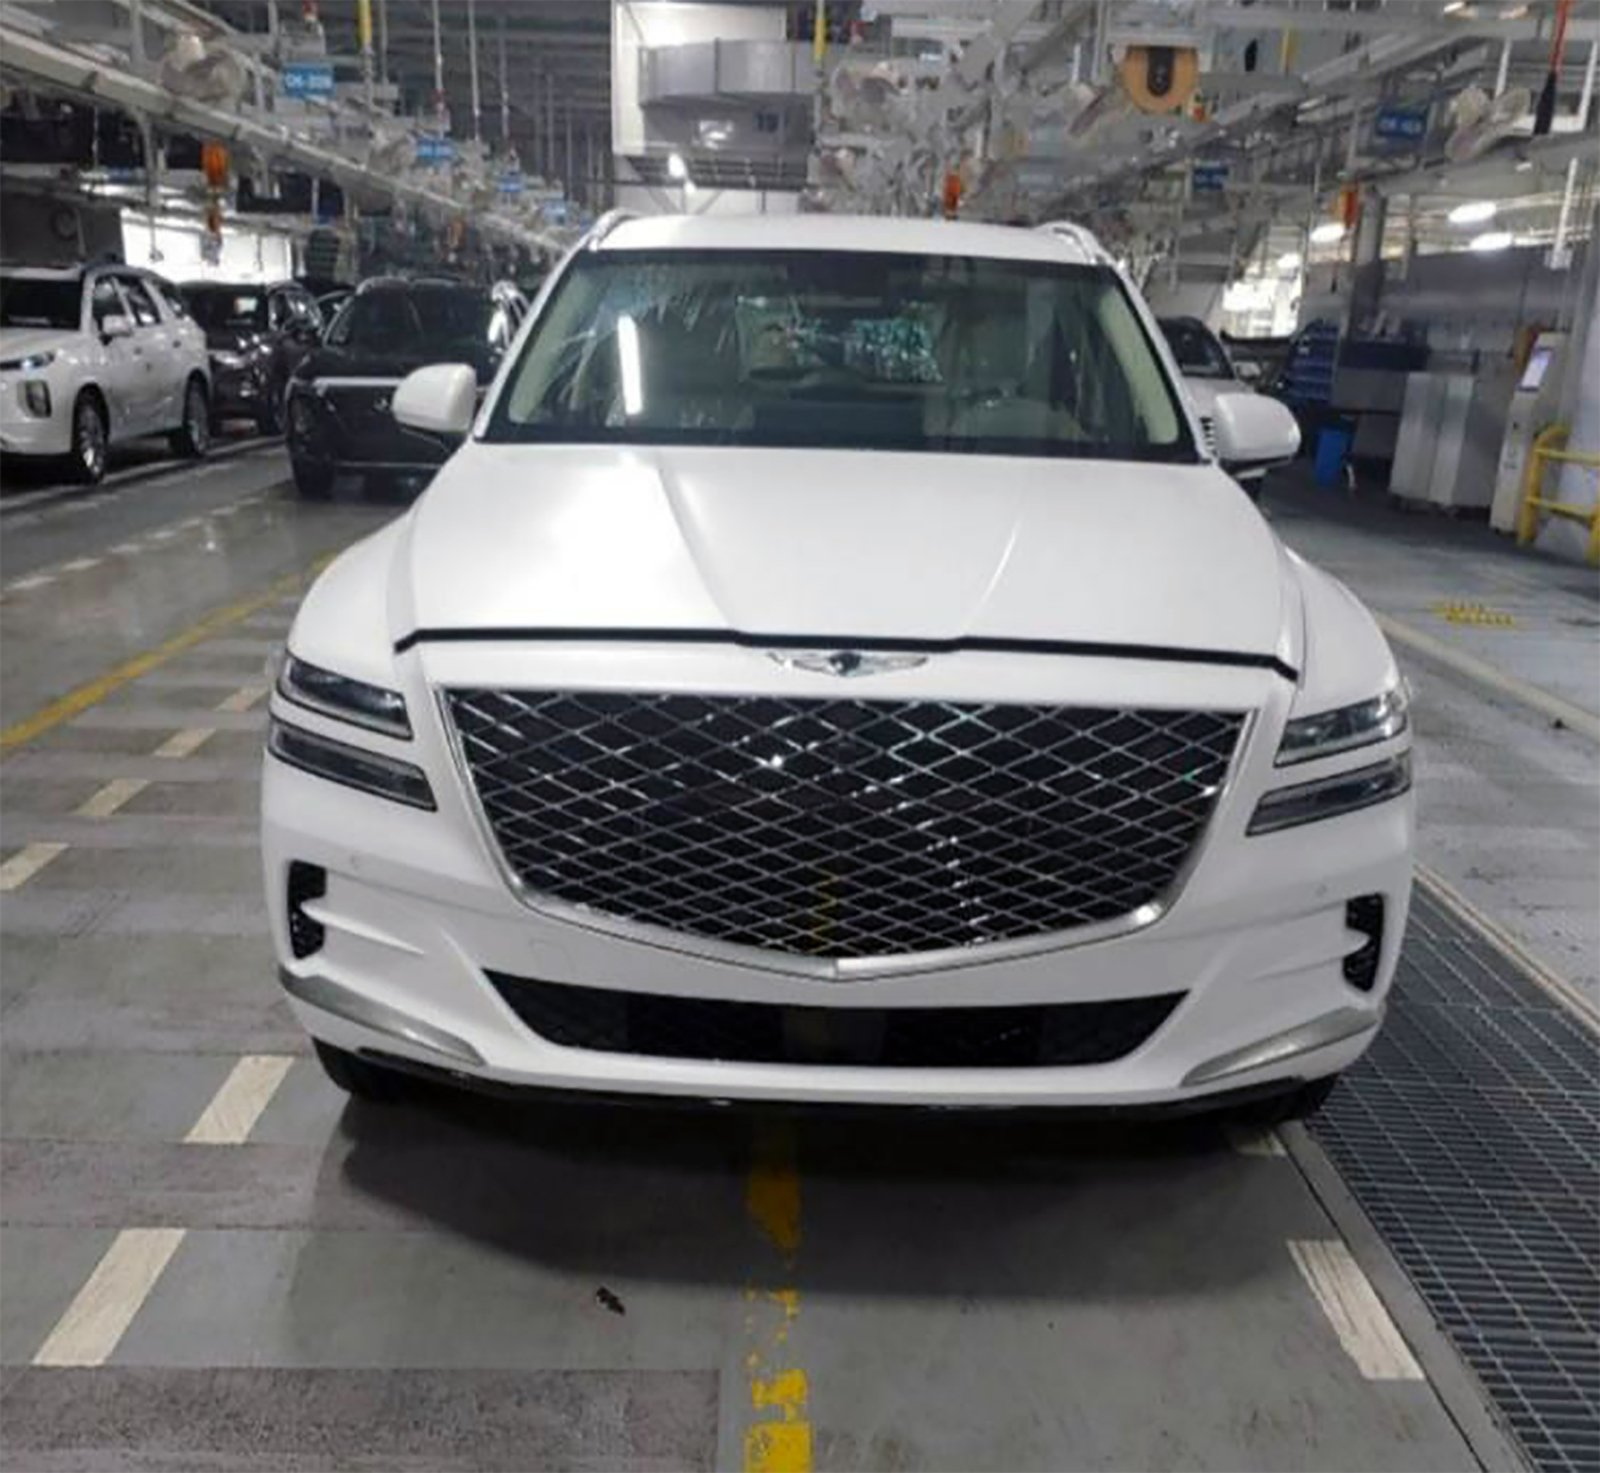 Genesis GV80 SUV Leaks With Impressively Powerful Exterior